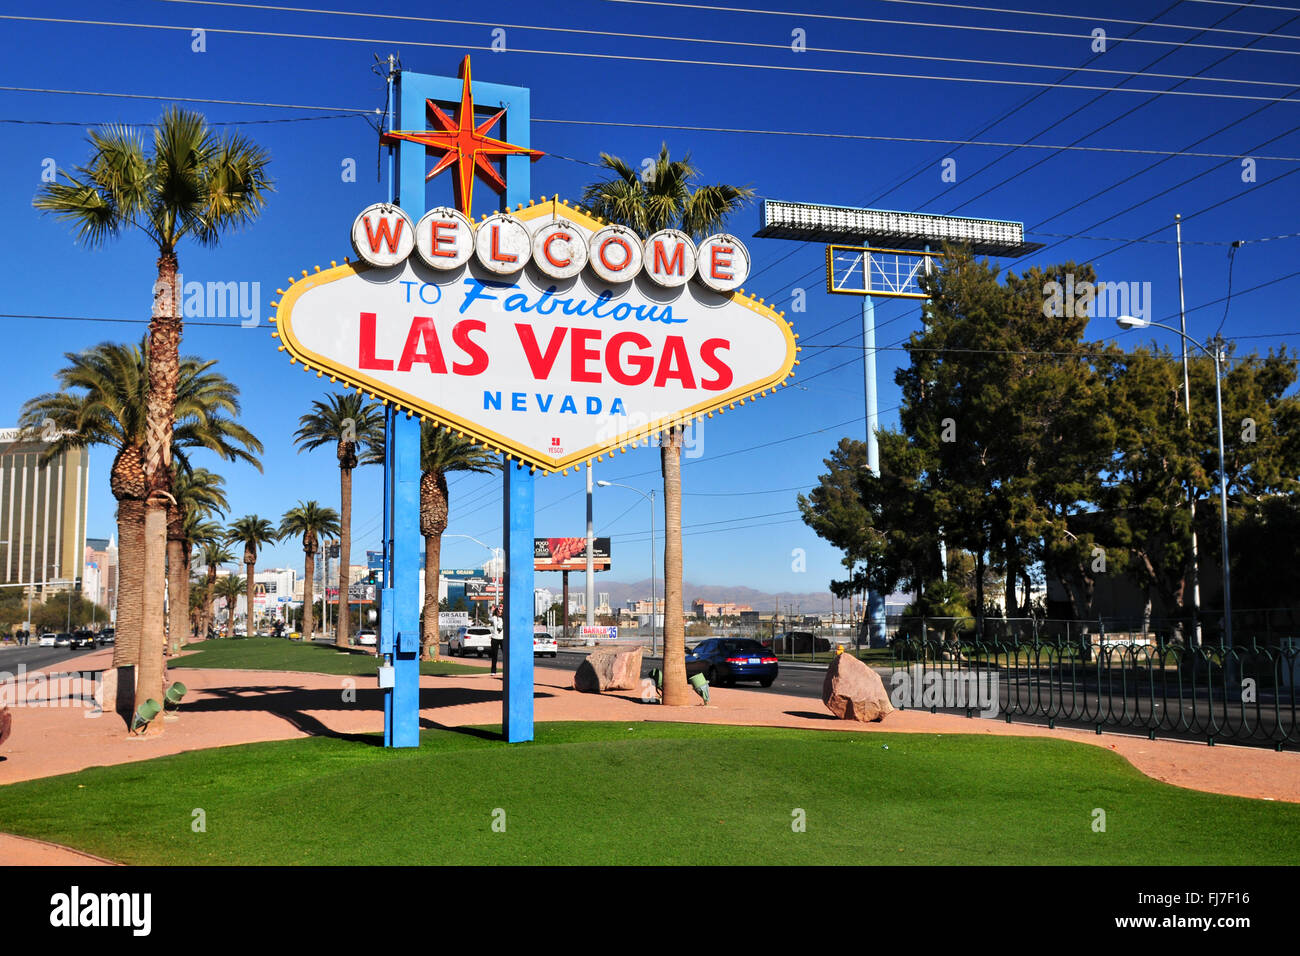 Das berühmte Schild (Billboard) am Las Vegas Strip, Las Vegas, Nevada, USA Stockfoto